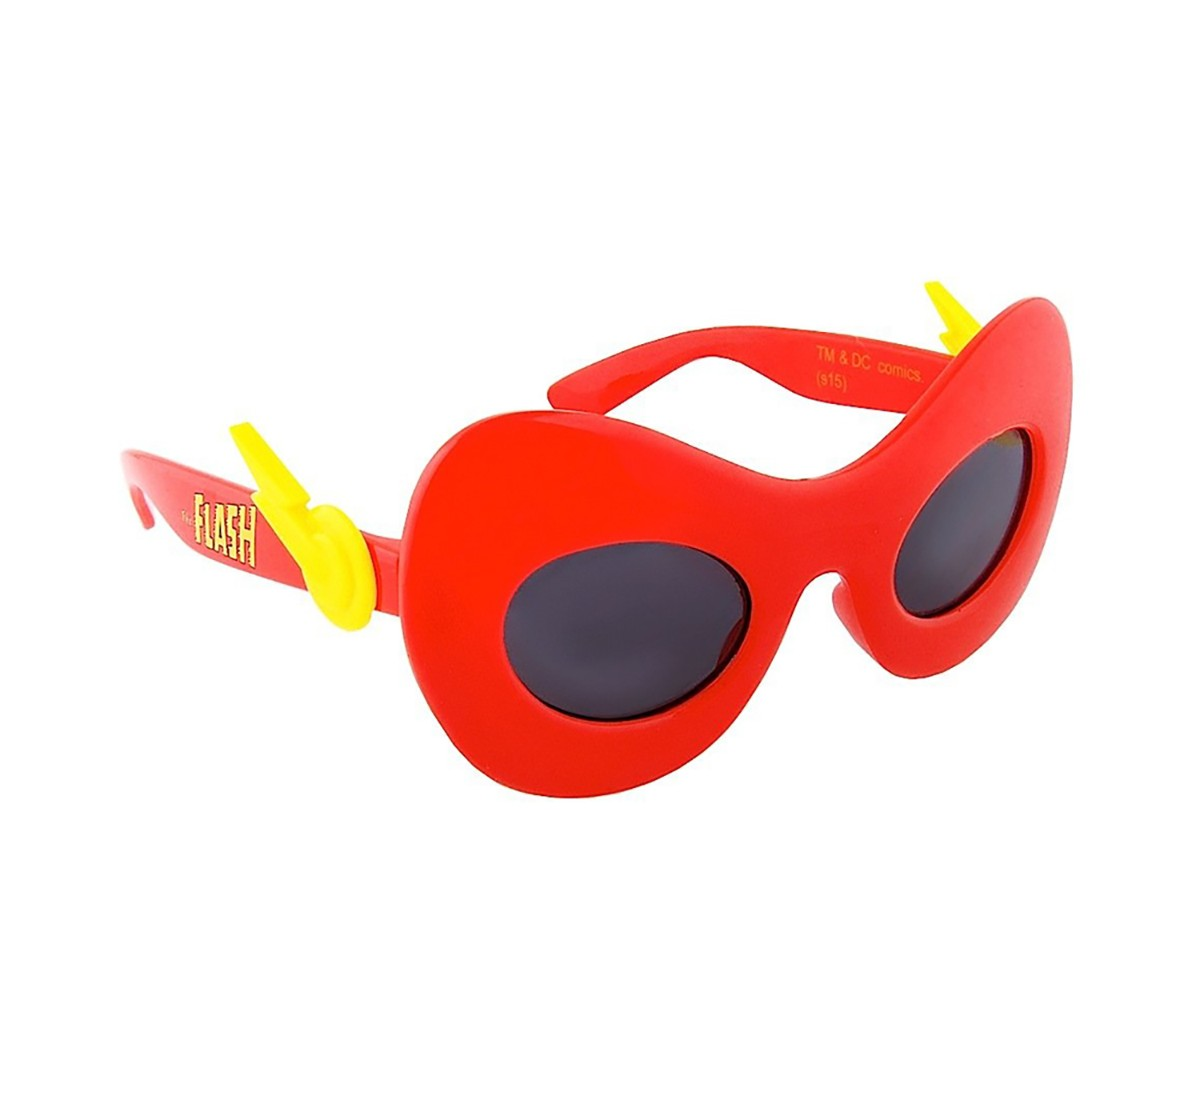 Dc Sunstaches Flash Character Sunglasses Novelty for Kids age 12M+